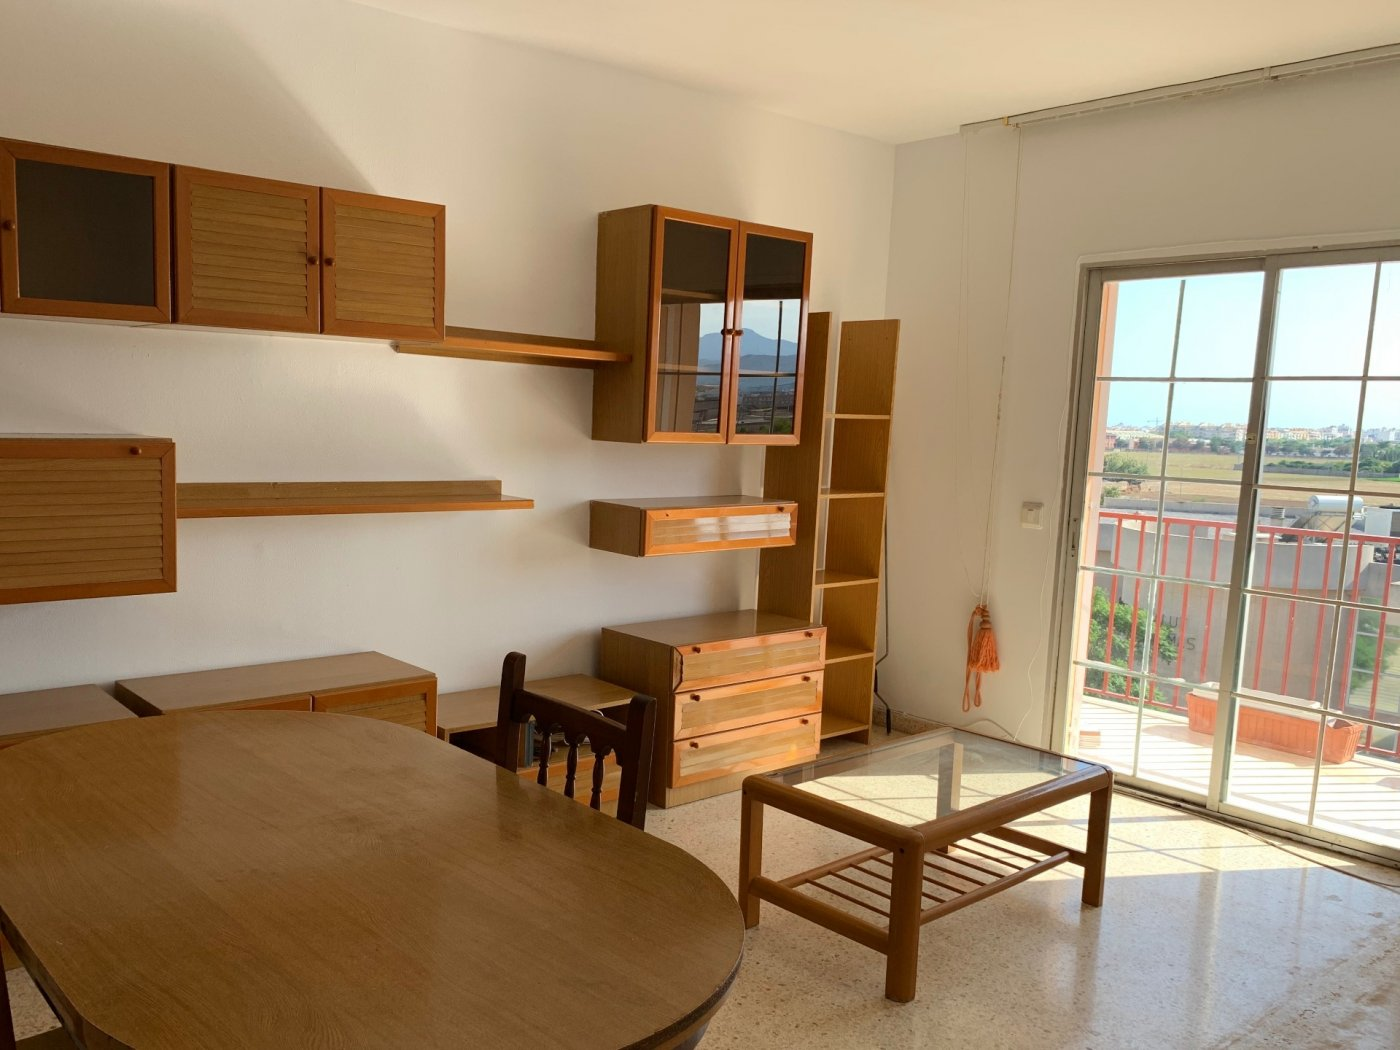 Location Appartement  Marratxí ,sa cabana. Tercer piso sin ascensor de 90 m² de superficie (con o sin muebl